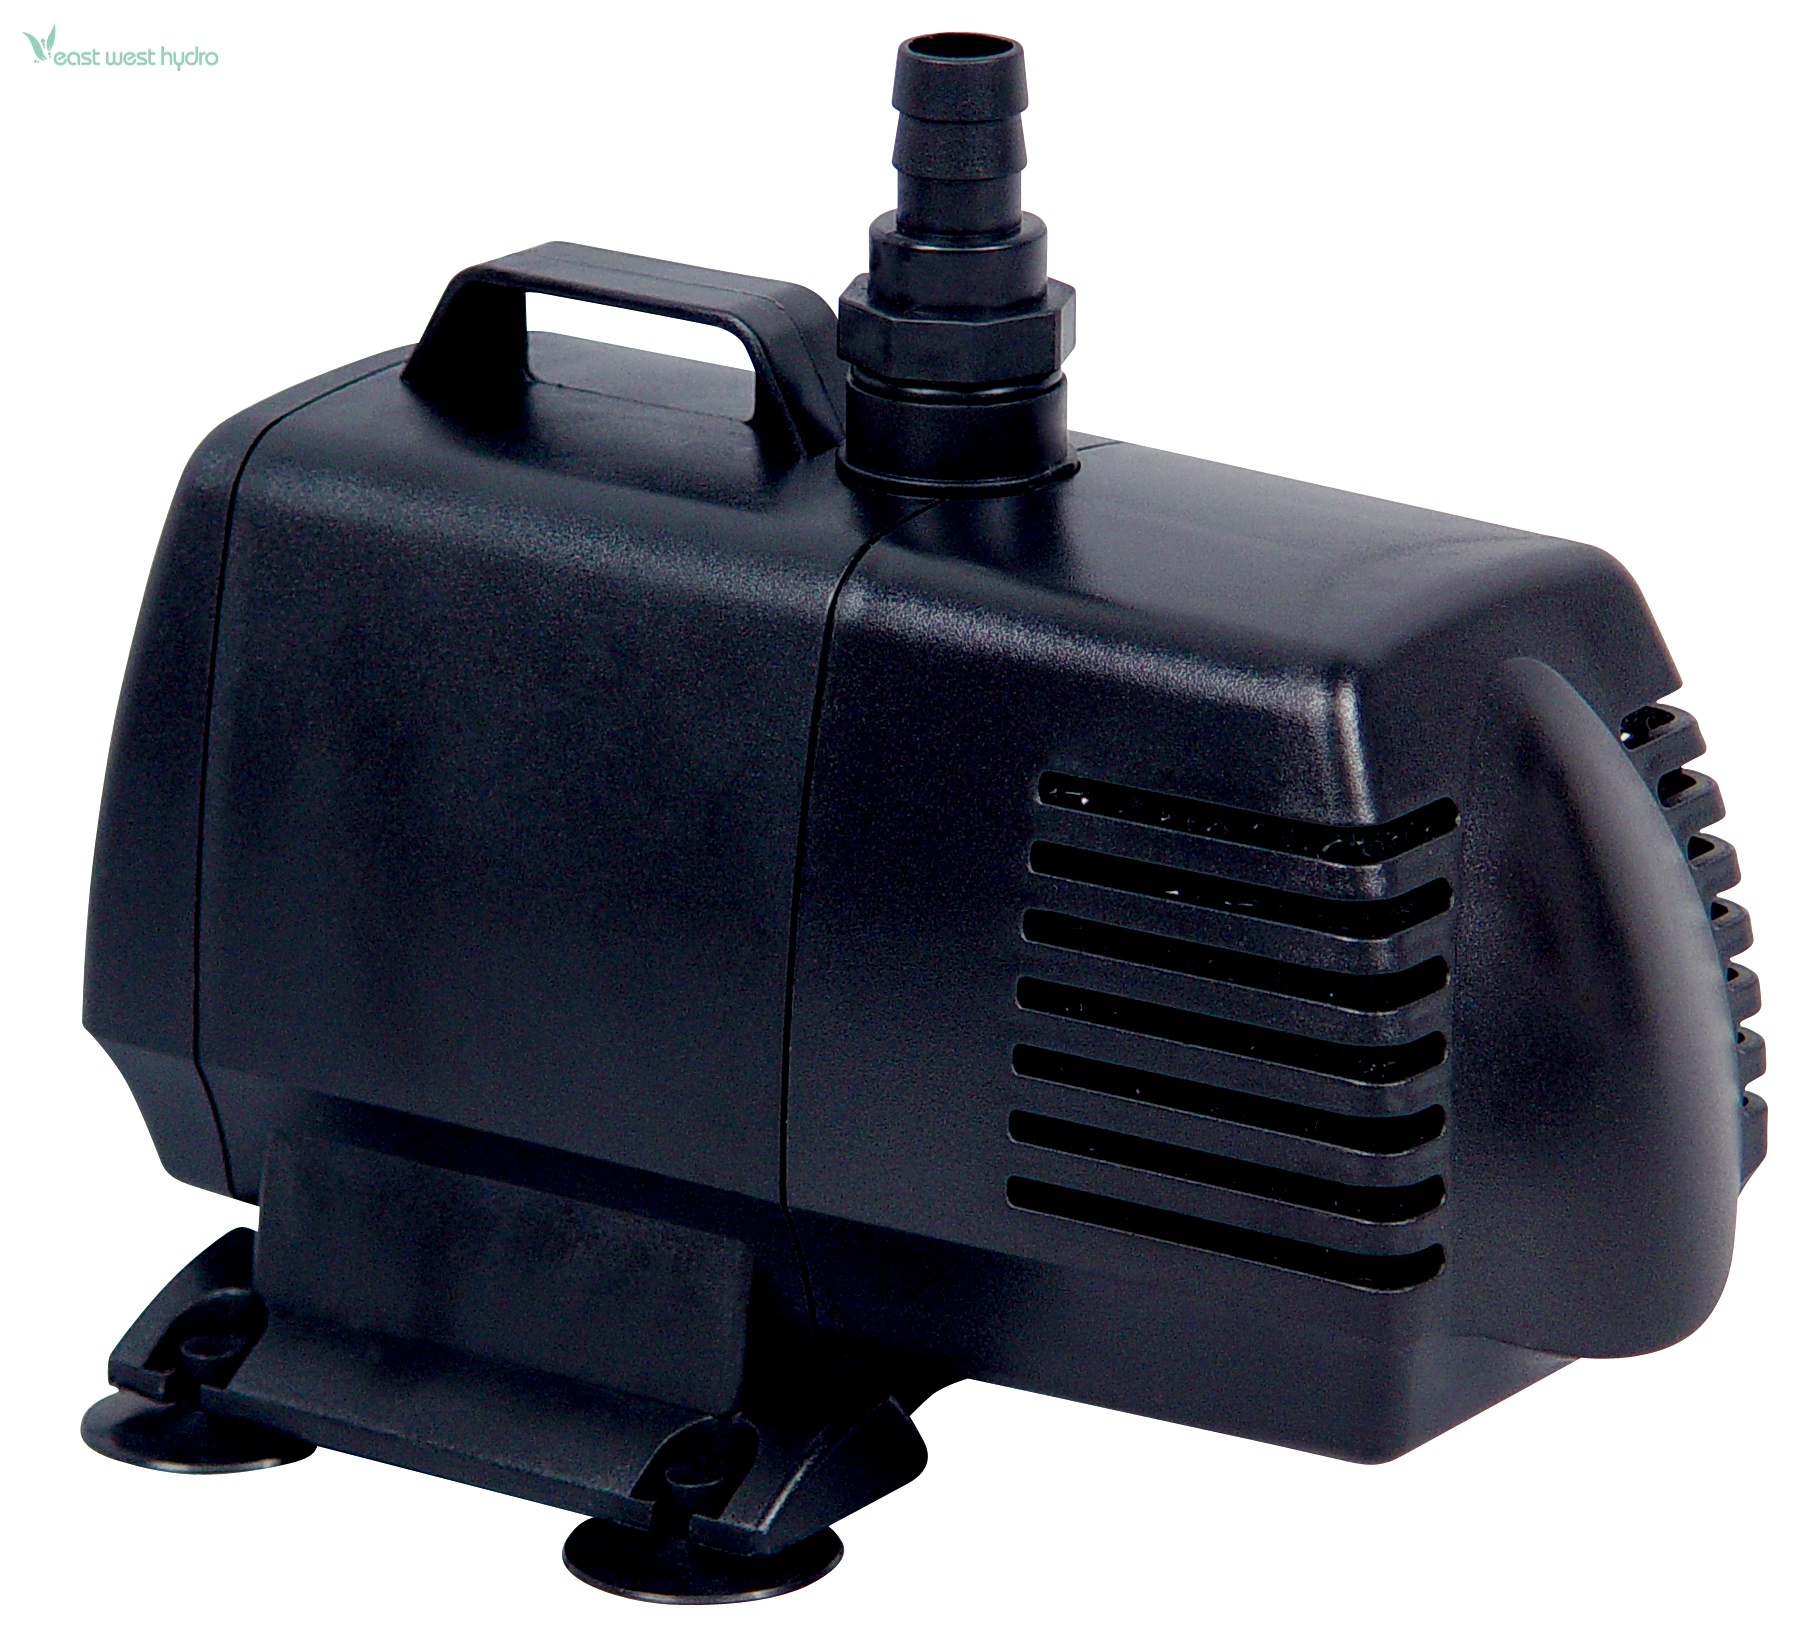 Ecoplus 1267 gph submersible pump 728325 eastwesthydro for Hydroponic submersible pump